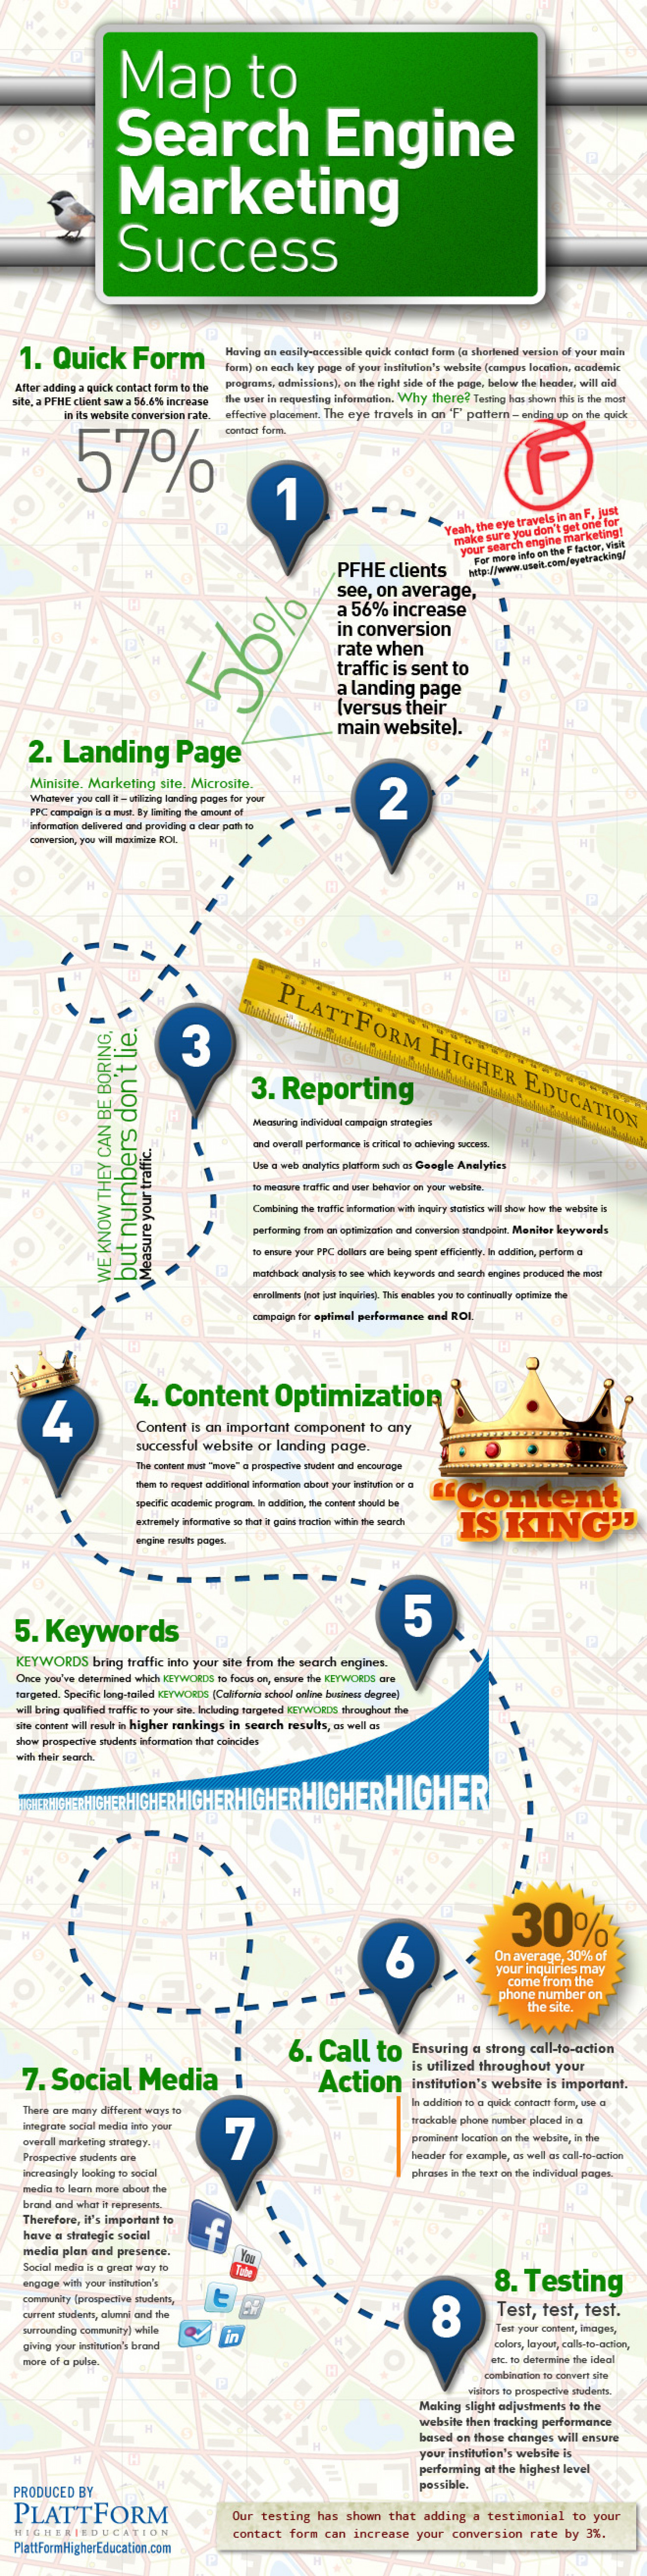 Map to Search Engine Marketing Success Infographic